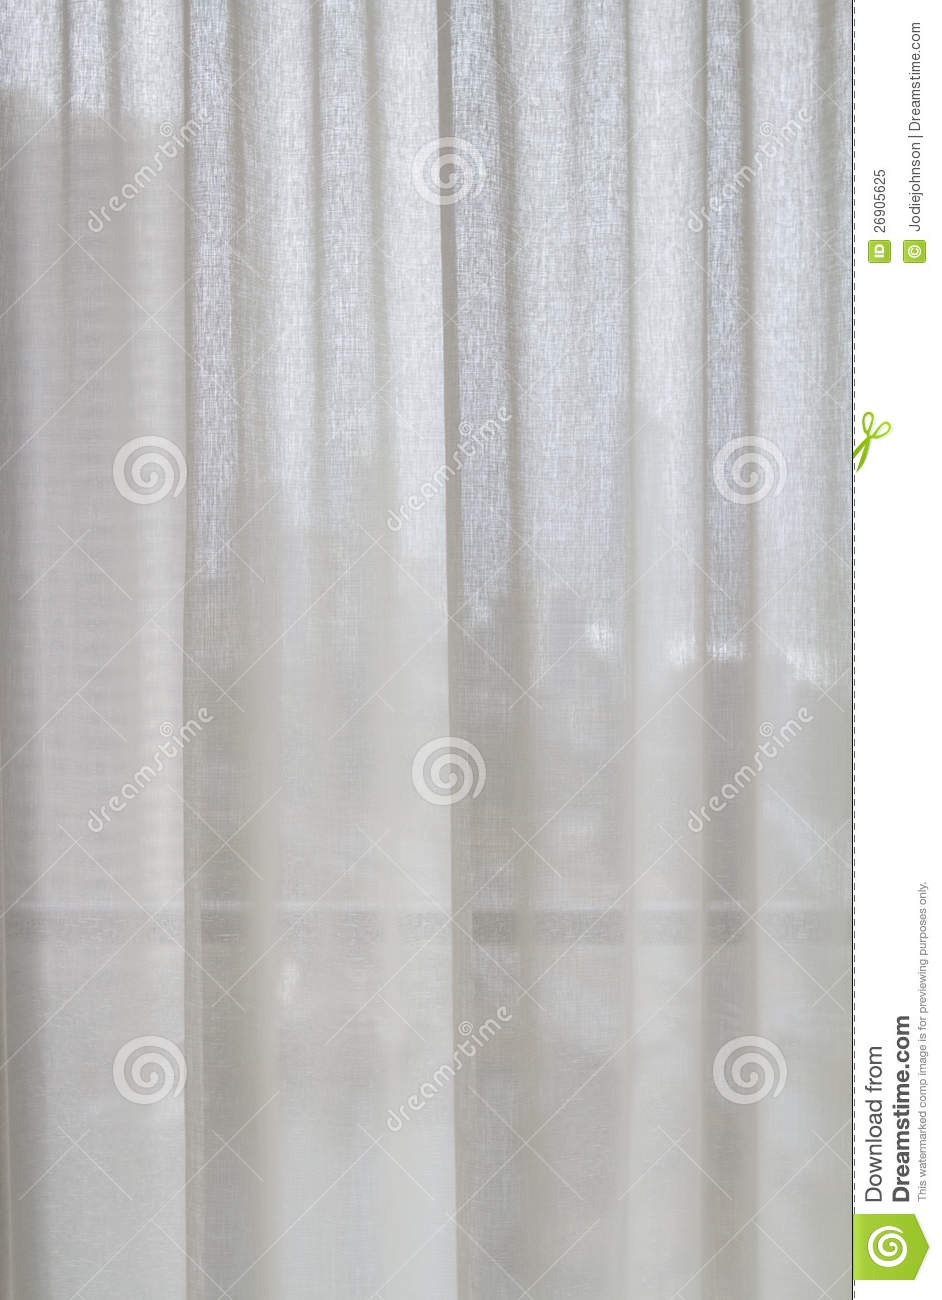 Sheer curtain texture - Royalty Free Stock Photo